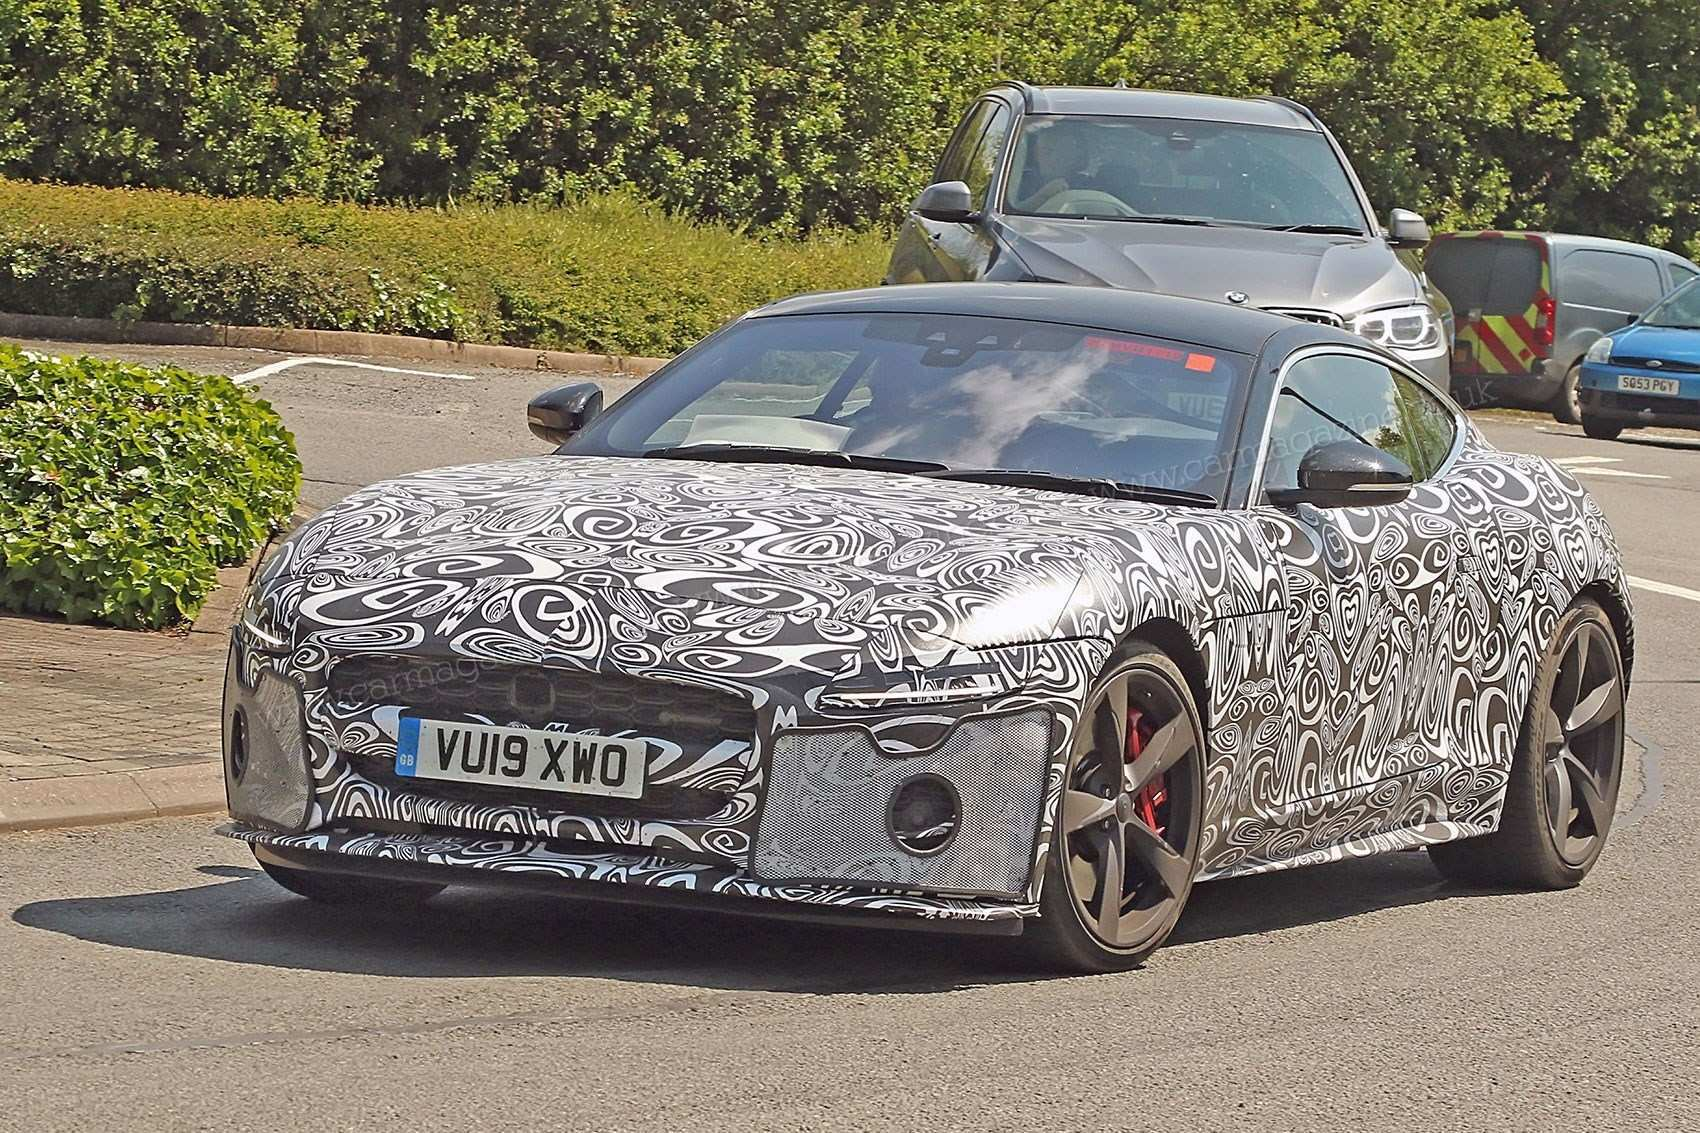 32 New Jaguar Svr 2020 Picture